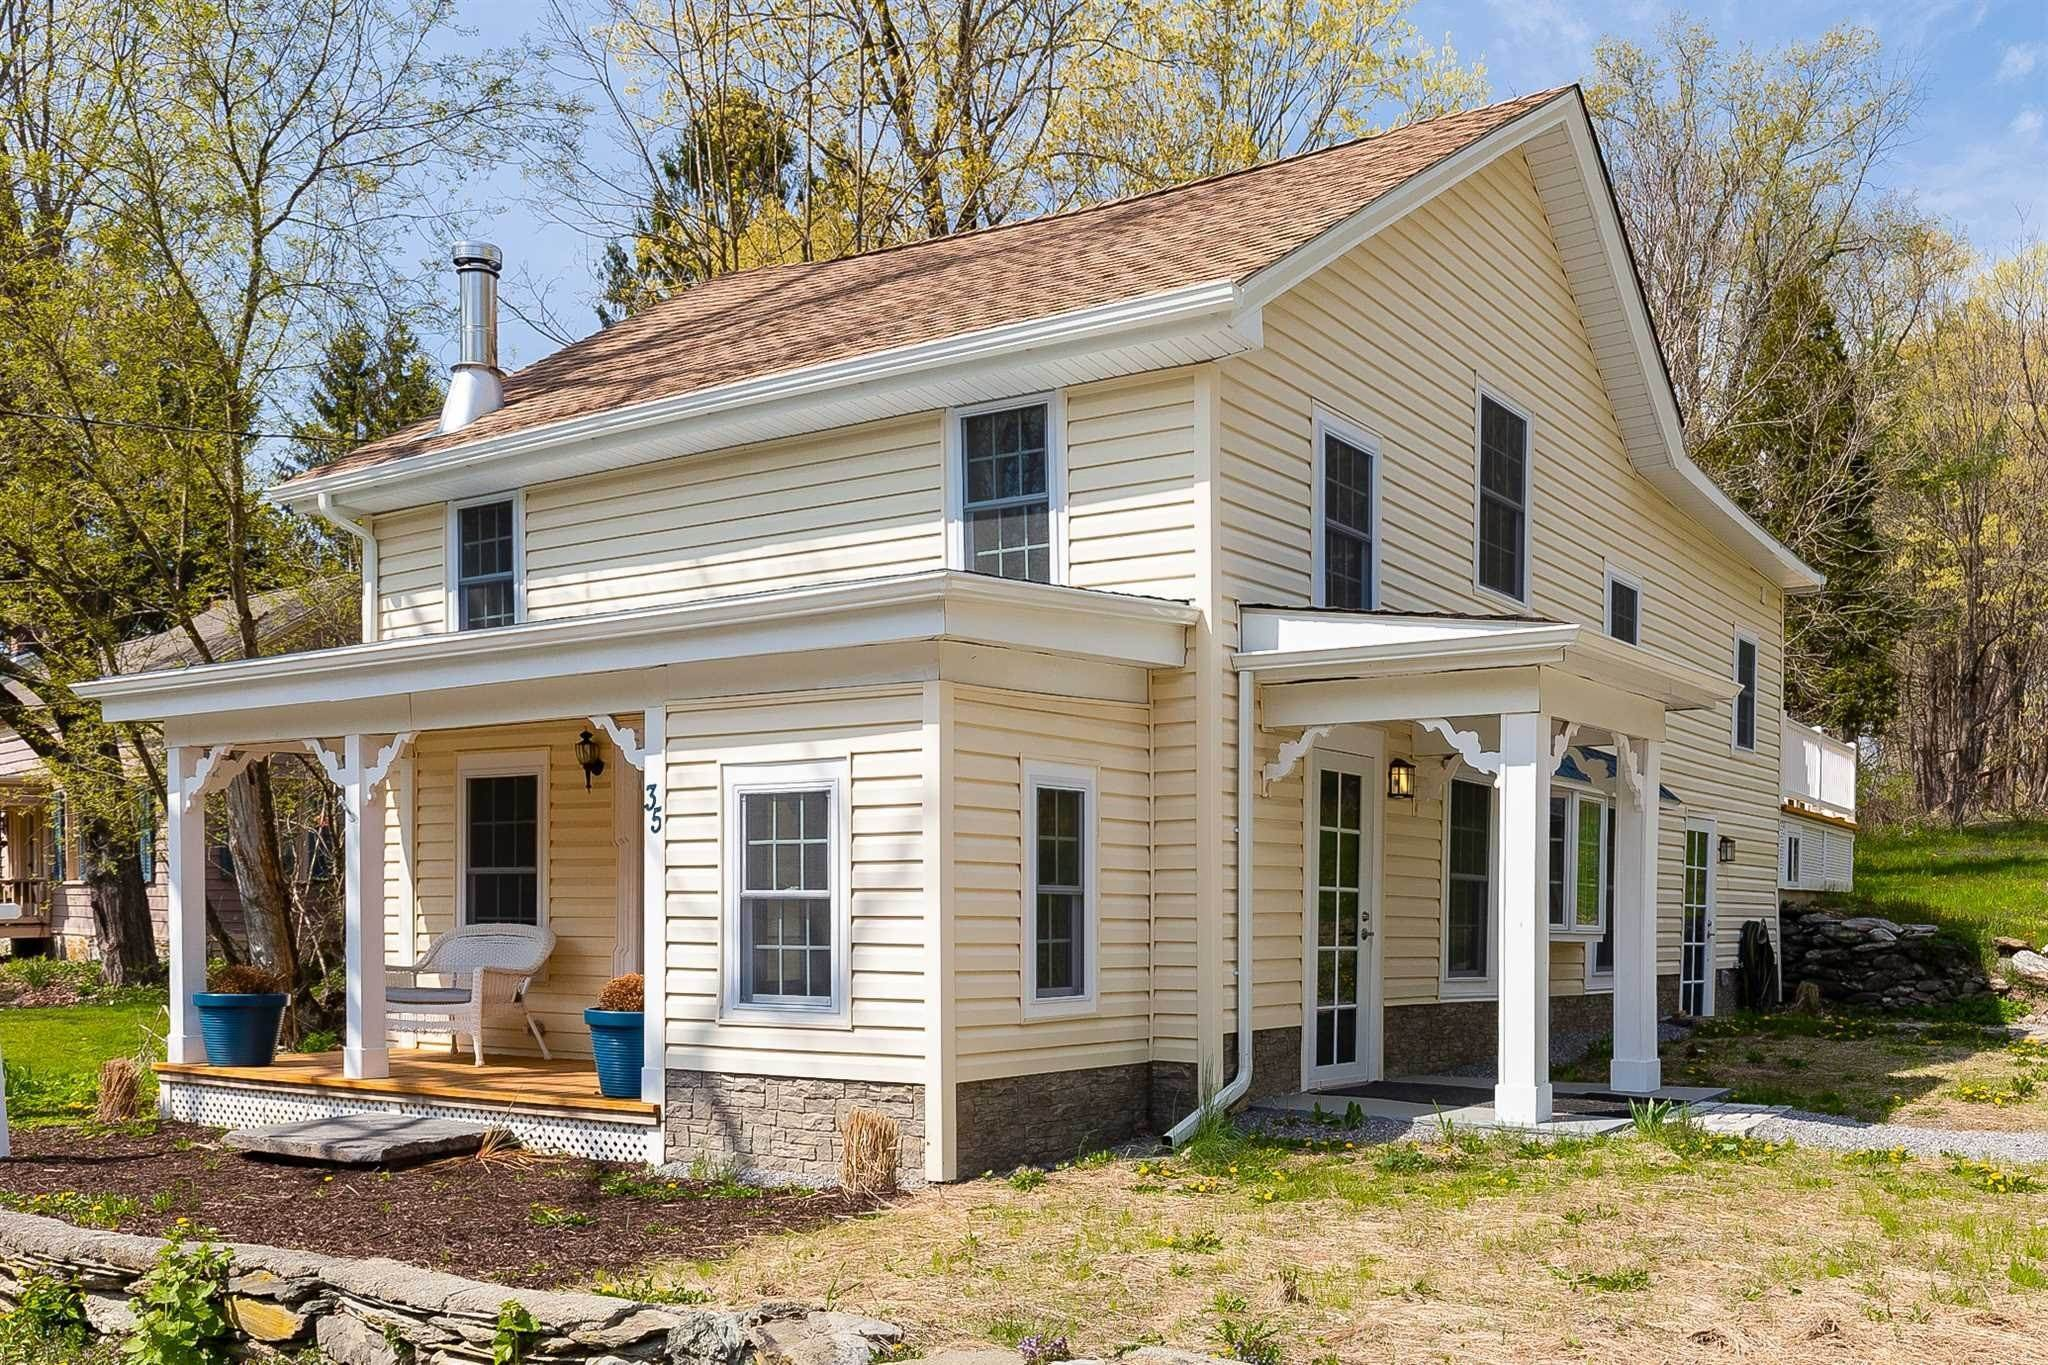 Single Family Homes for Sale at 35 VERBANK VILLAGE Road Union Vale, New York 12585 United States